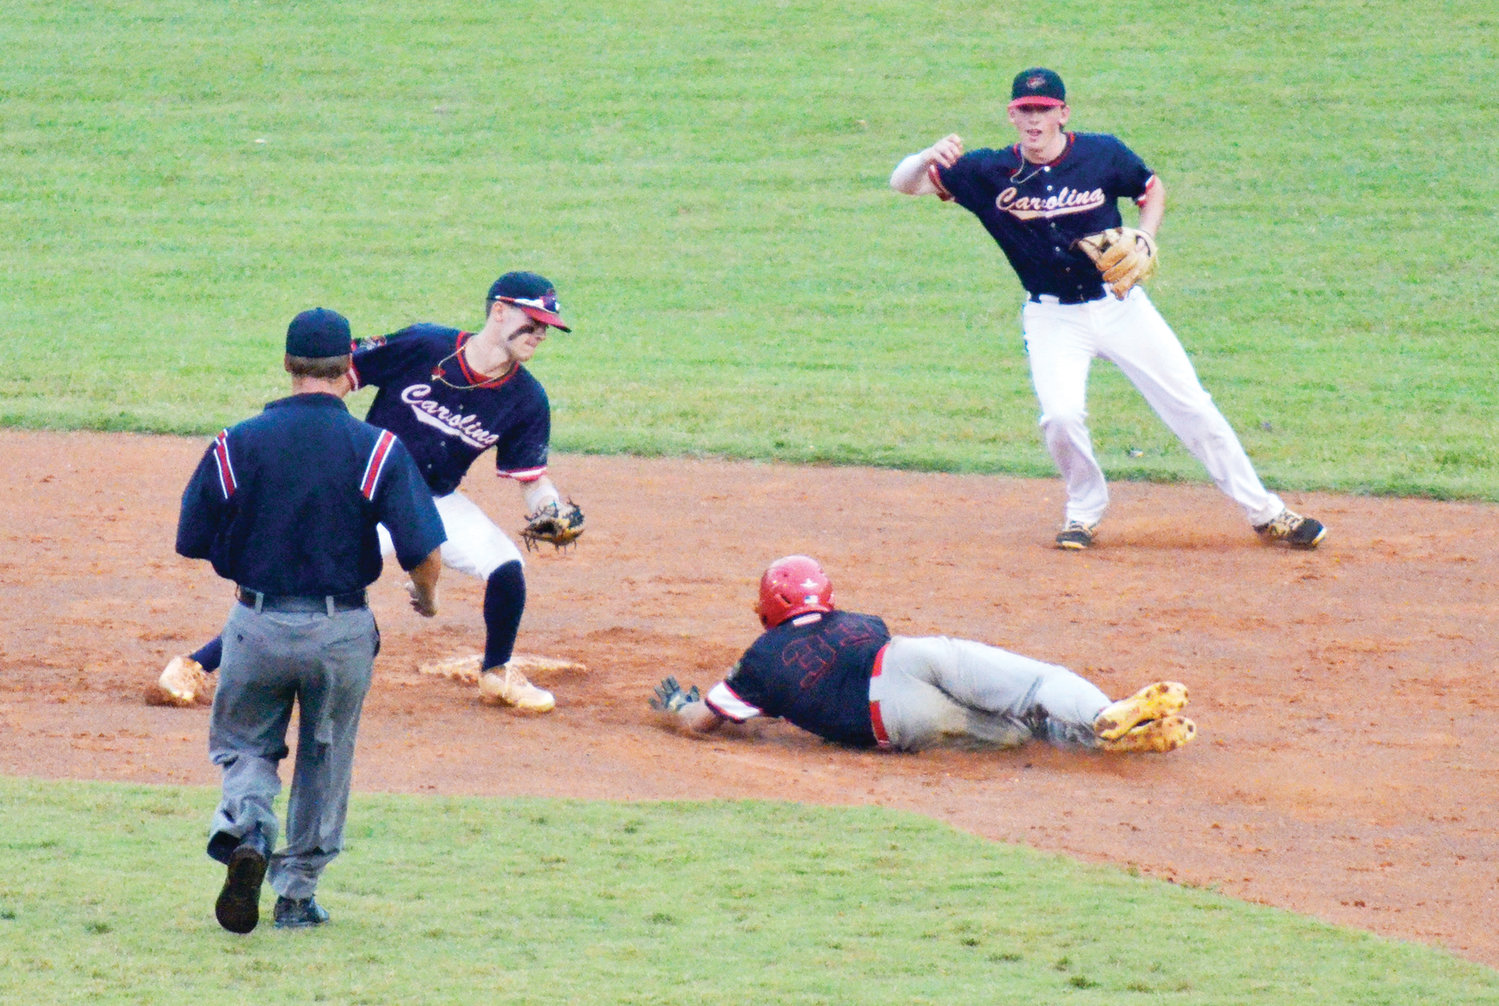 Carolina Coyote's Tyler Myers reaches to tag out Deep River Muddog Noah Handy as he slides into second Tuesday, July 16 at Craven Stadium in Ramseur. Handy was called out as another Coyote player watched, but the Muddogs won the contest, 2-1.